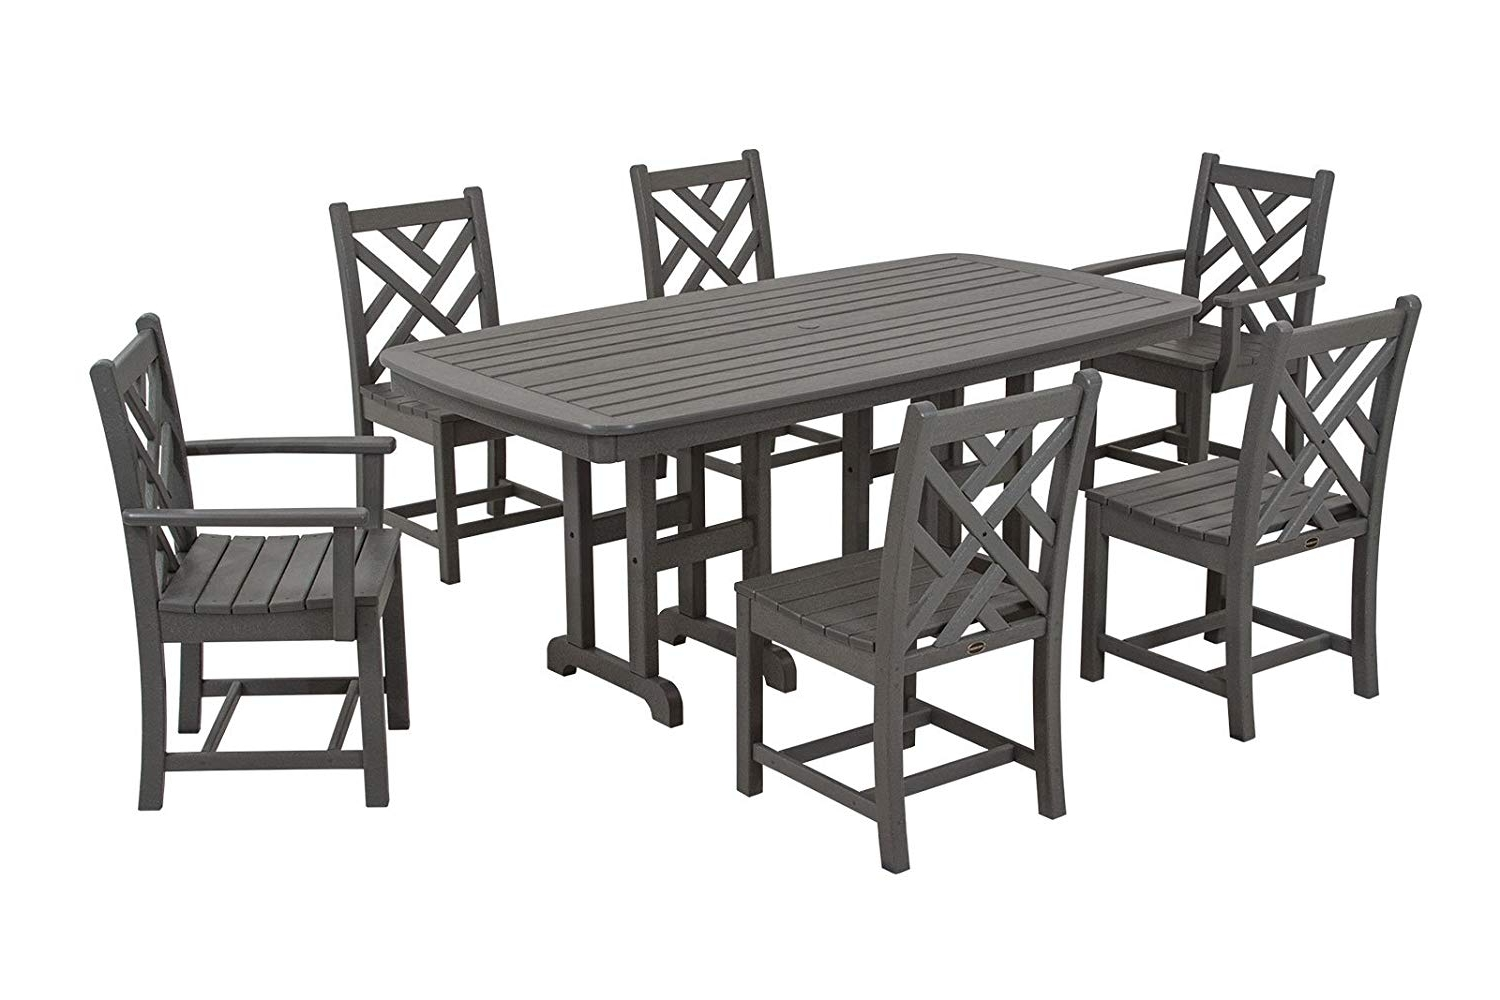 Most Popular Market 7 Piece Counter Sets For Amazon : Polywood Pws121 1 Gy Chippendale 7 Piece Dining Set (View 15 of 25)